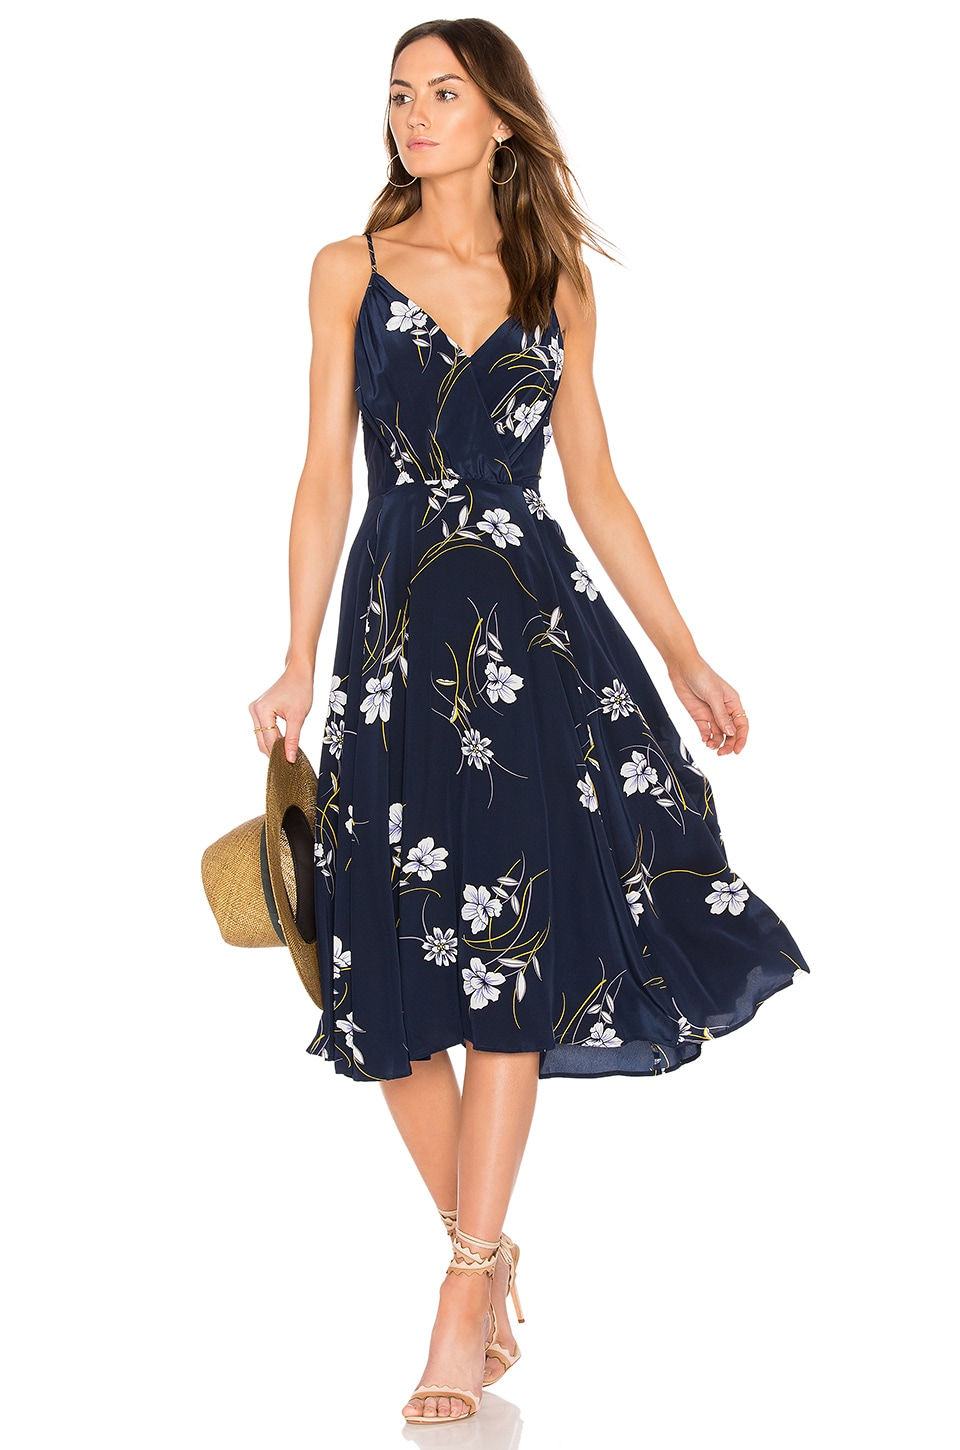 Yumi Kim Fit & Flare Dress in Delia's Dream